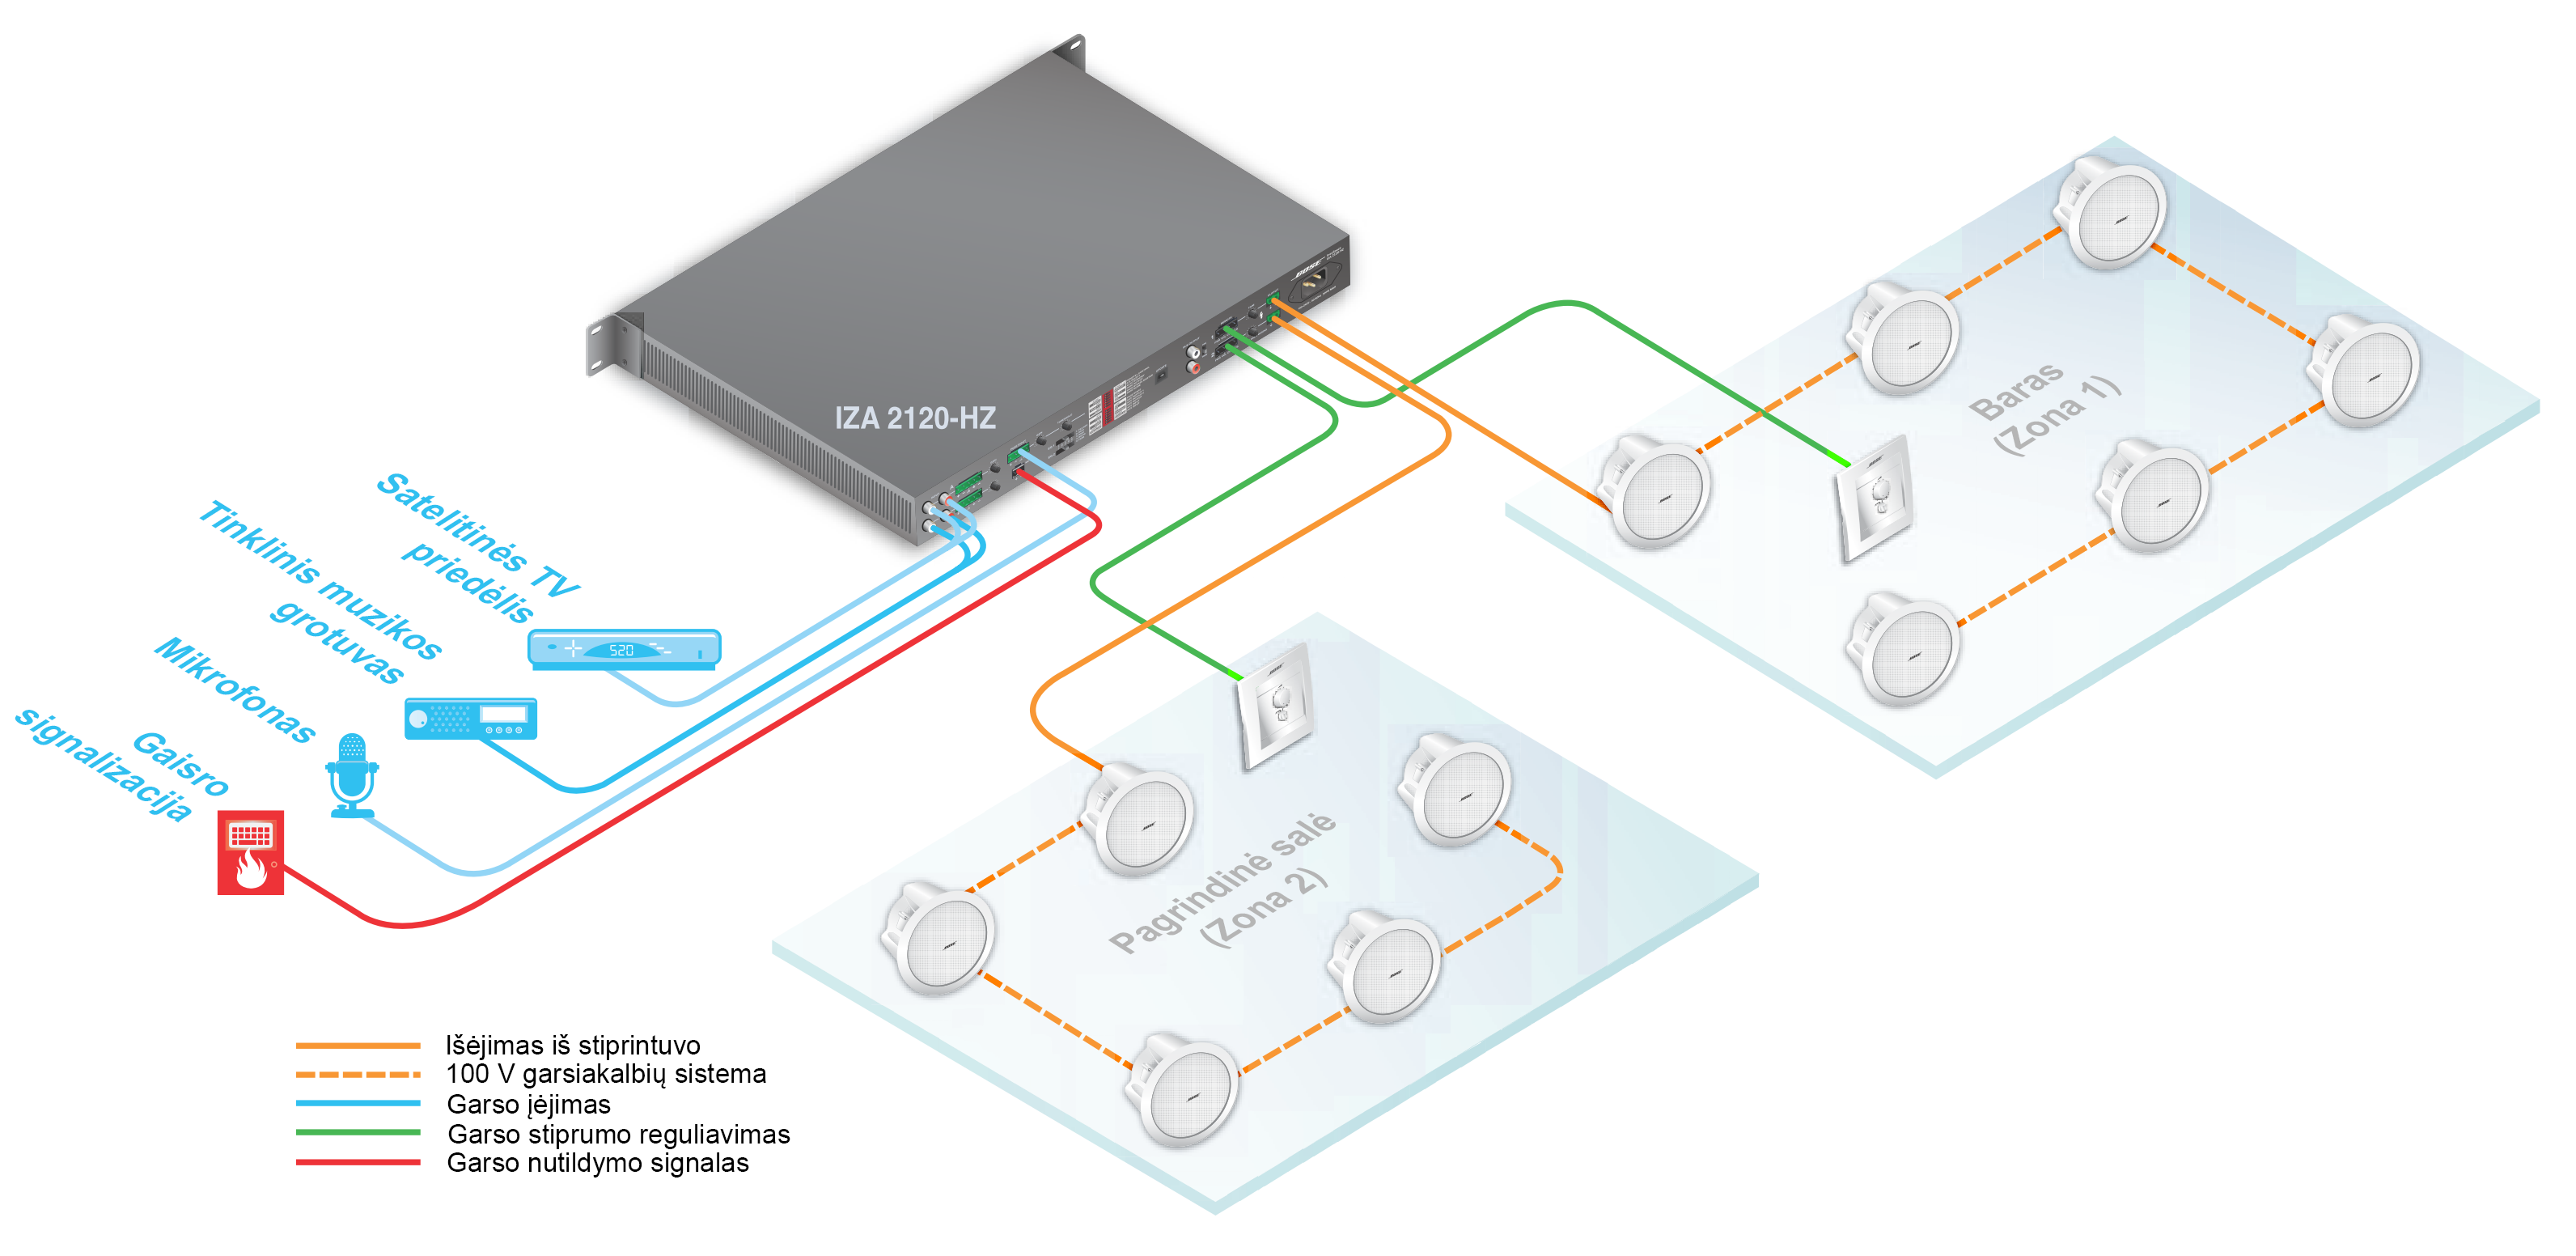 Bose Freespace Iza 2120 Hz Integrated Amplifier Using 901 Equalizer Wiring Diagram Remote Muting Allows The To Be Muted Via A Centralized Control System